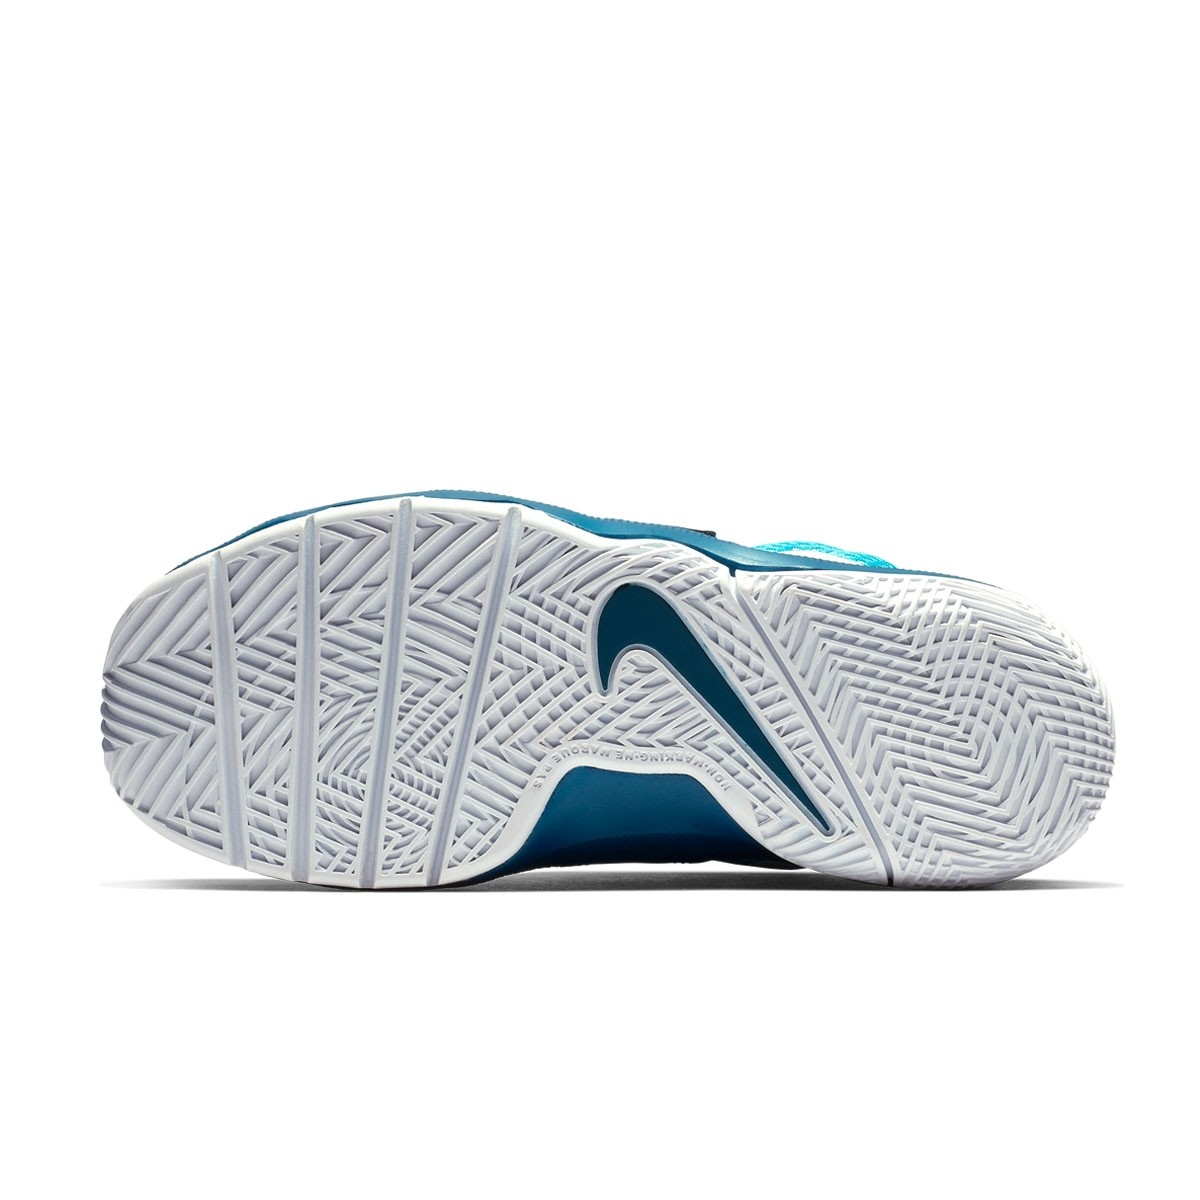 Nike Team Hustle D8 'Baby blue' 881942-406